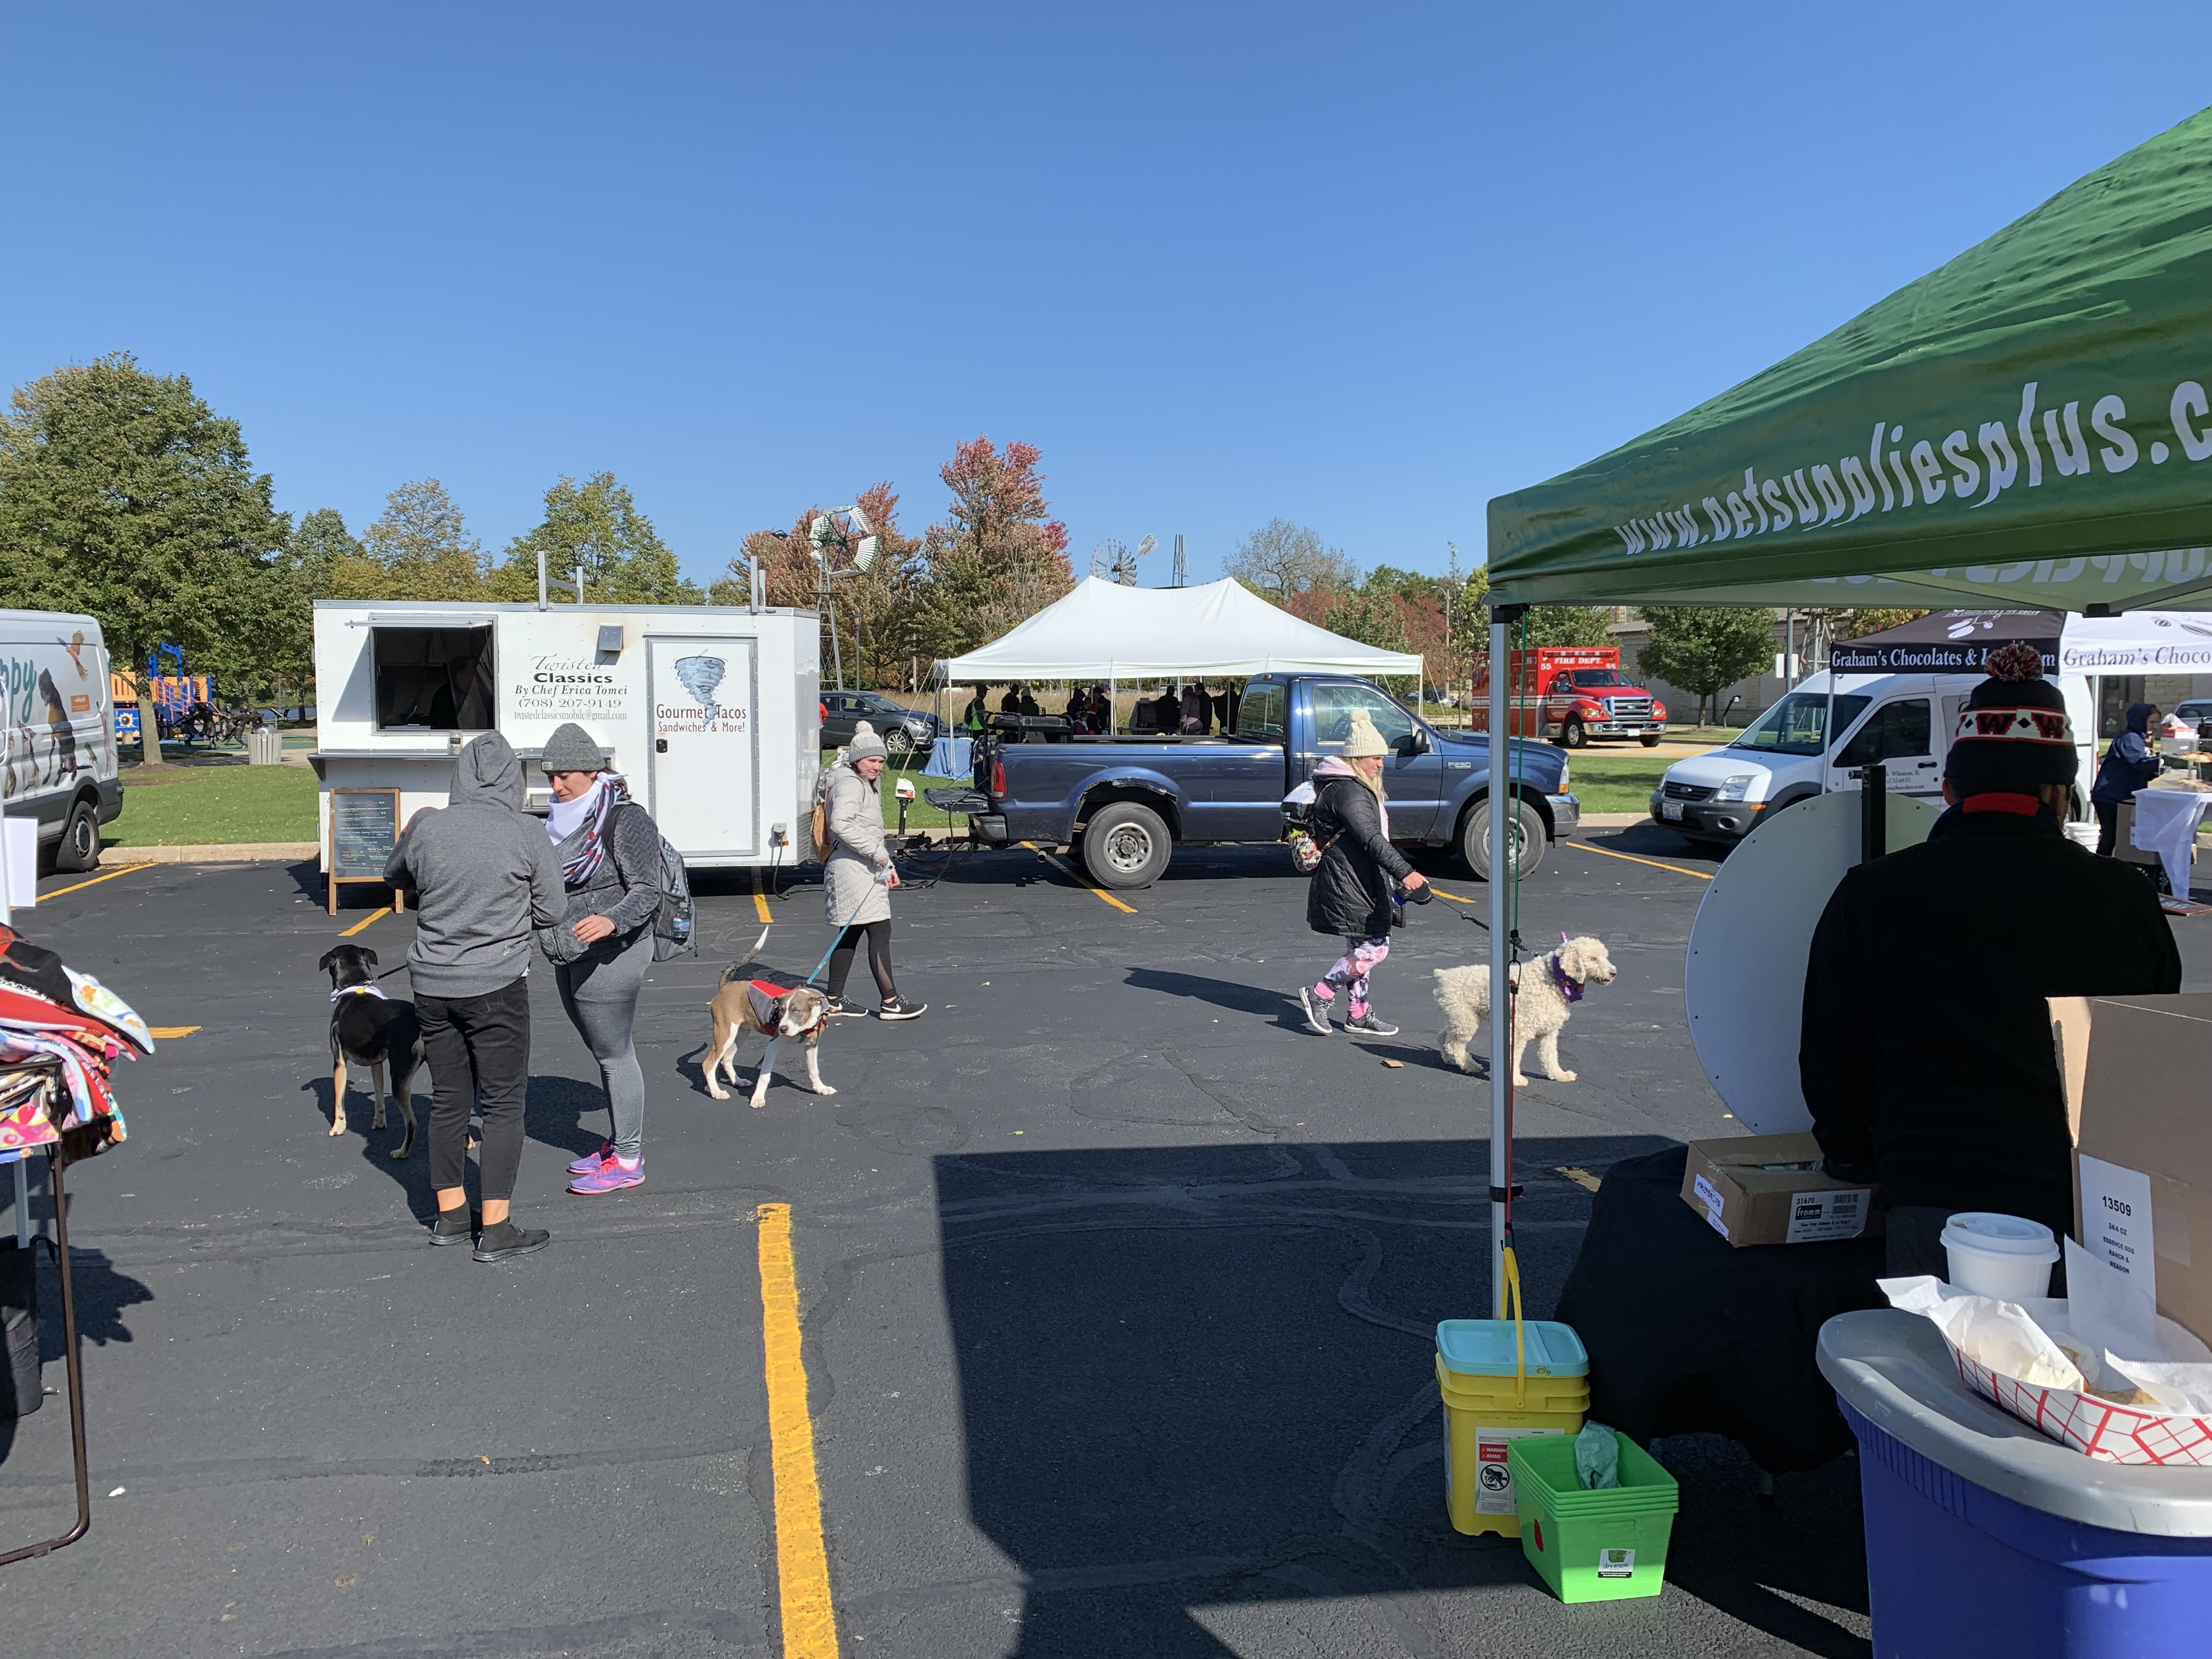 There were lots of vendors with neat items and services for sale, and everyone enjoyed mingling and meeting new dog and human friends.